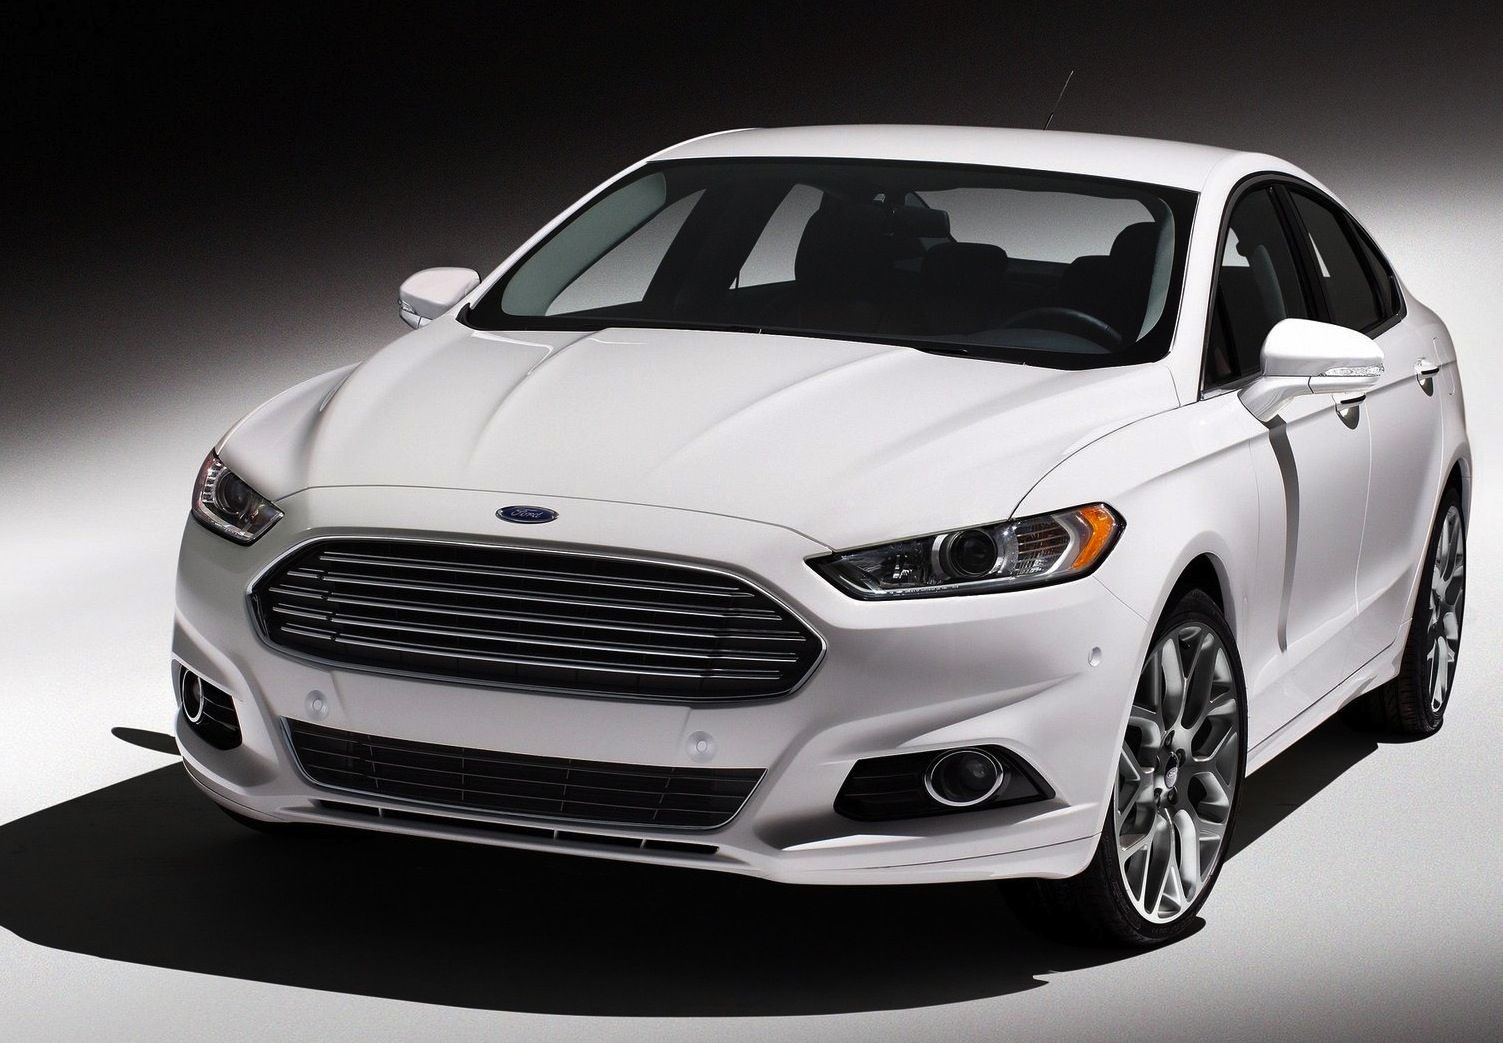 2014 Ford Fusion Hybrid Specs And Review Ford Fusion 2013 Ford Fusion 2015 Ford Mustang